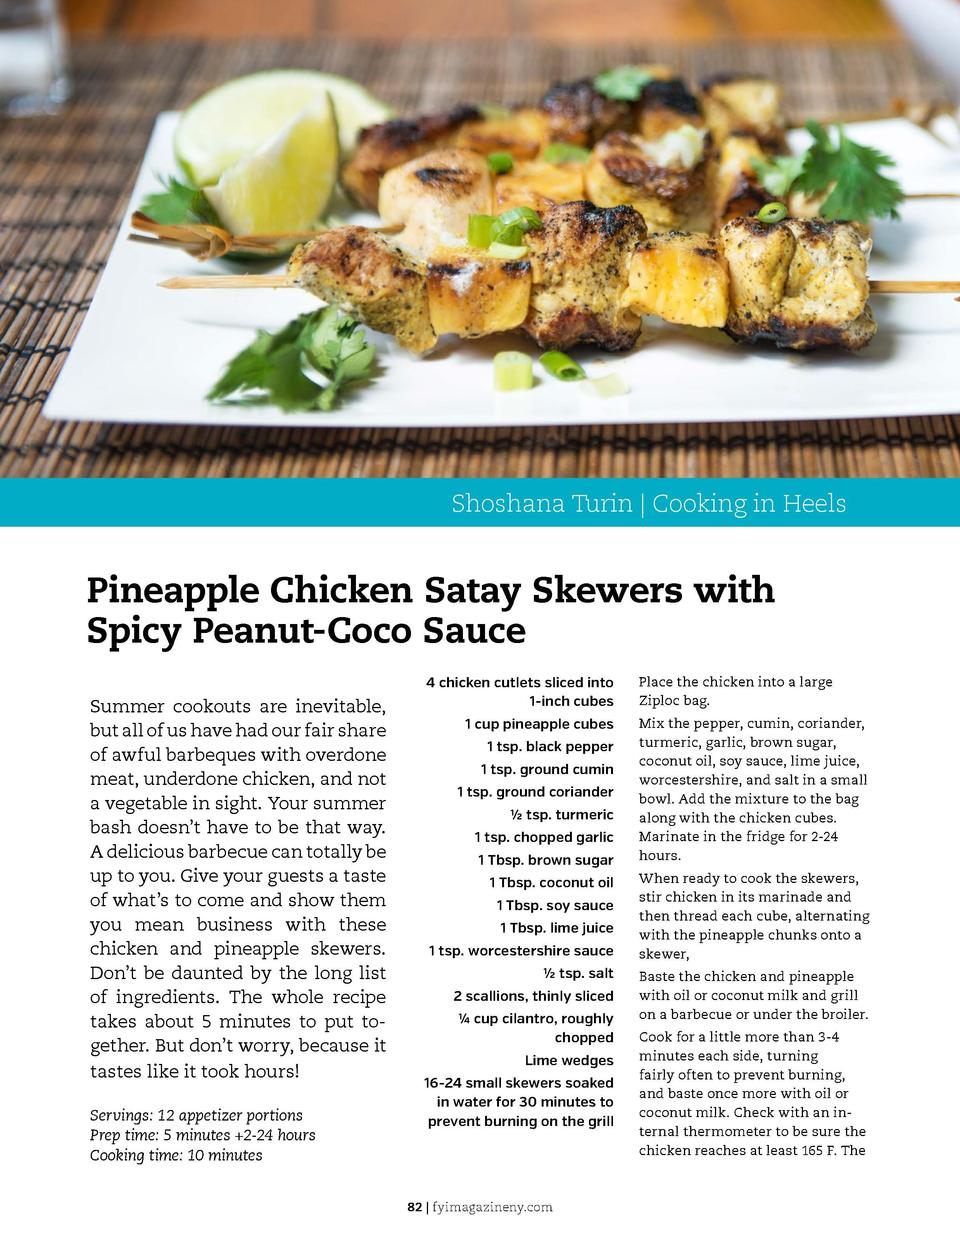 sharpen your appet  te  sharpen your appet  te  Grilled Corn with Cilantro Herb Oil  chicken  Shoshana Turin   Cooking in ...